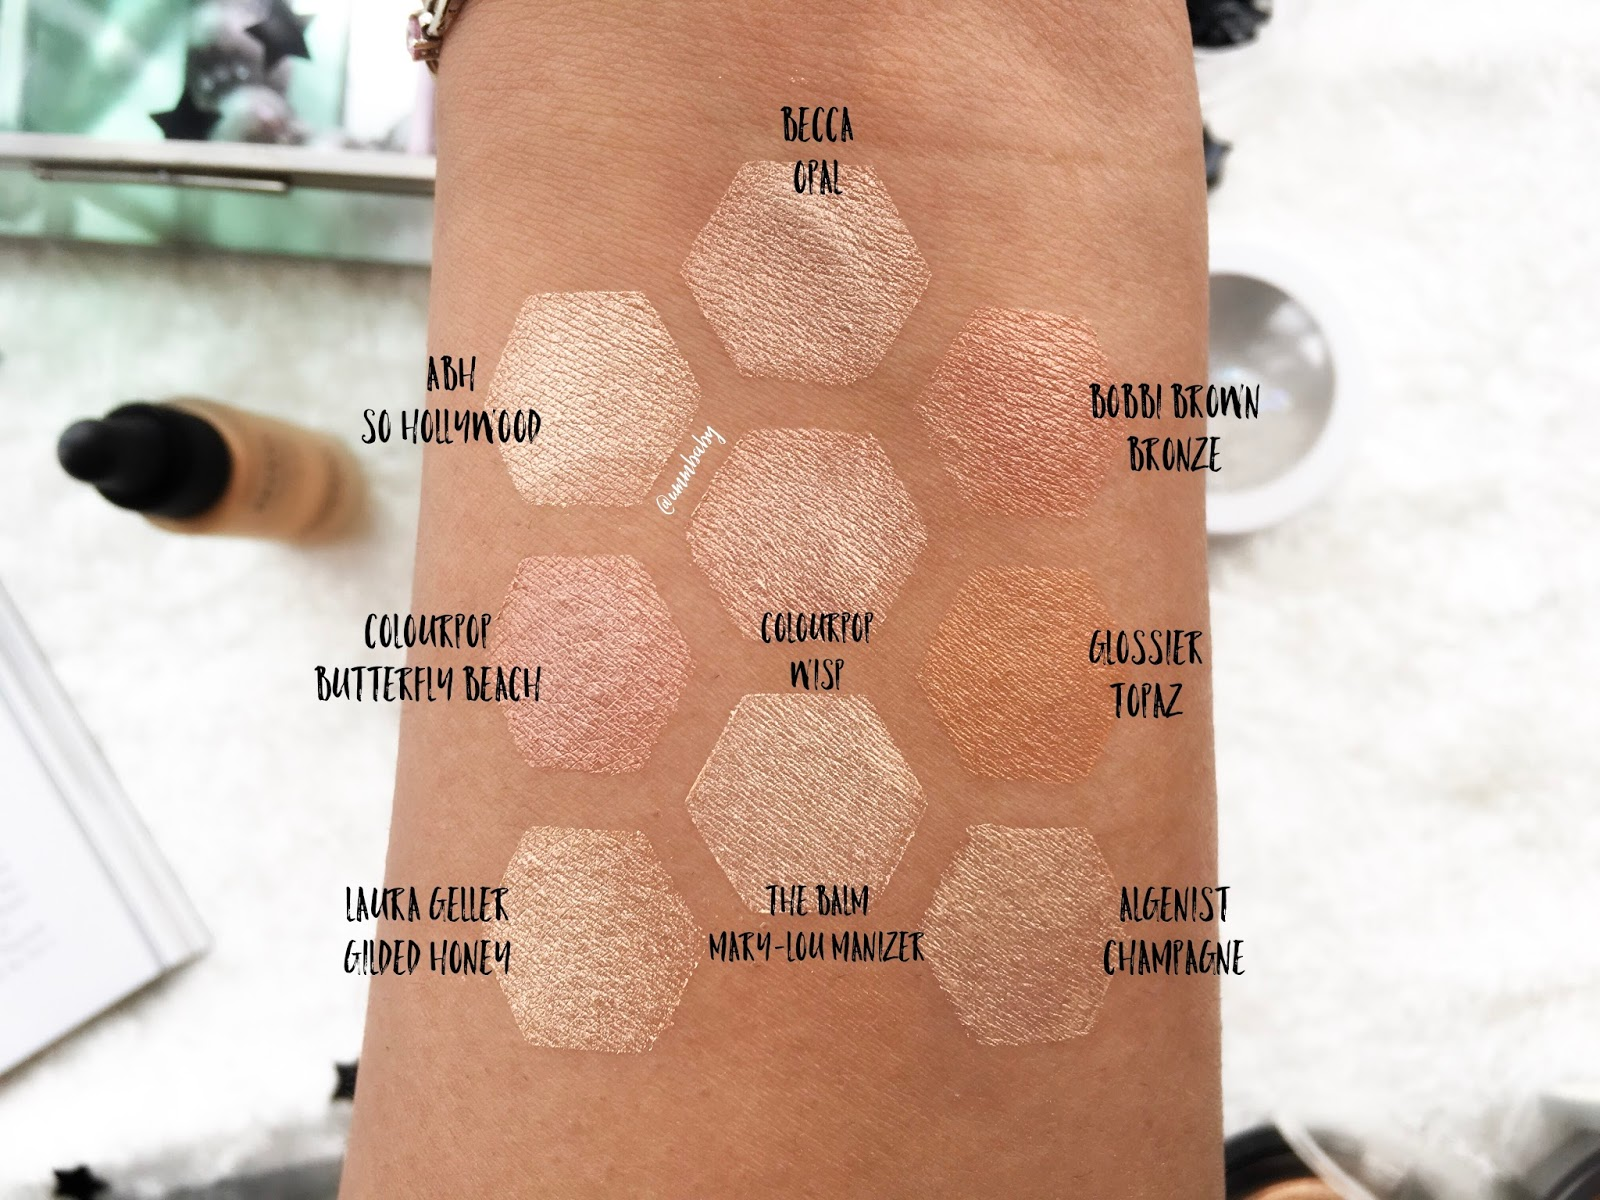 nc40 nc42 swatches highlighters, the balm mary lou manizer swatch, becca opal medium skin swatch, colourpop wisp swatch, colourpop butterfly beach swatch, glossier topaz swatch, algenist champagne swatch, abh so hollywood swatch, laura geller gilded honey swatch, bobbi brown shimmer brck swatch